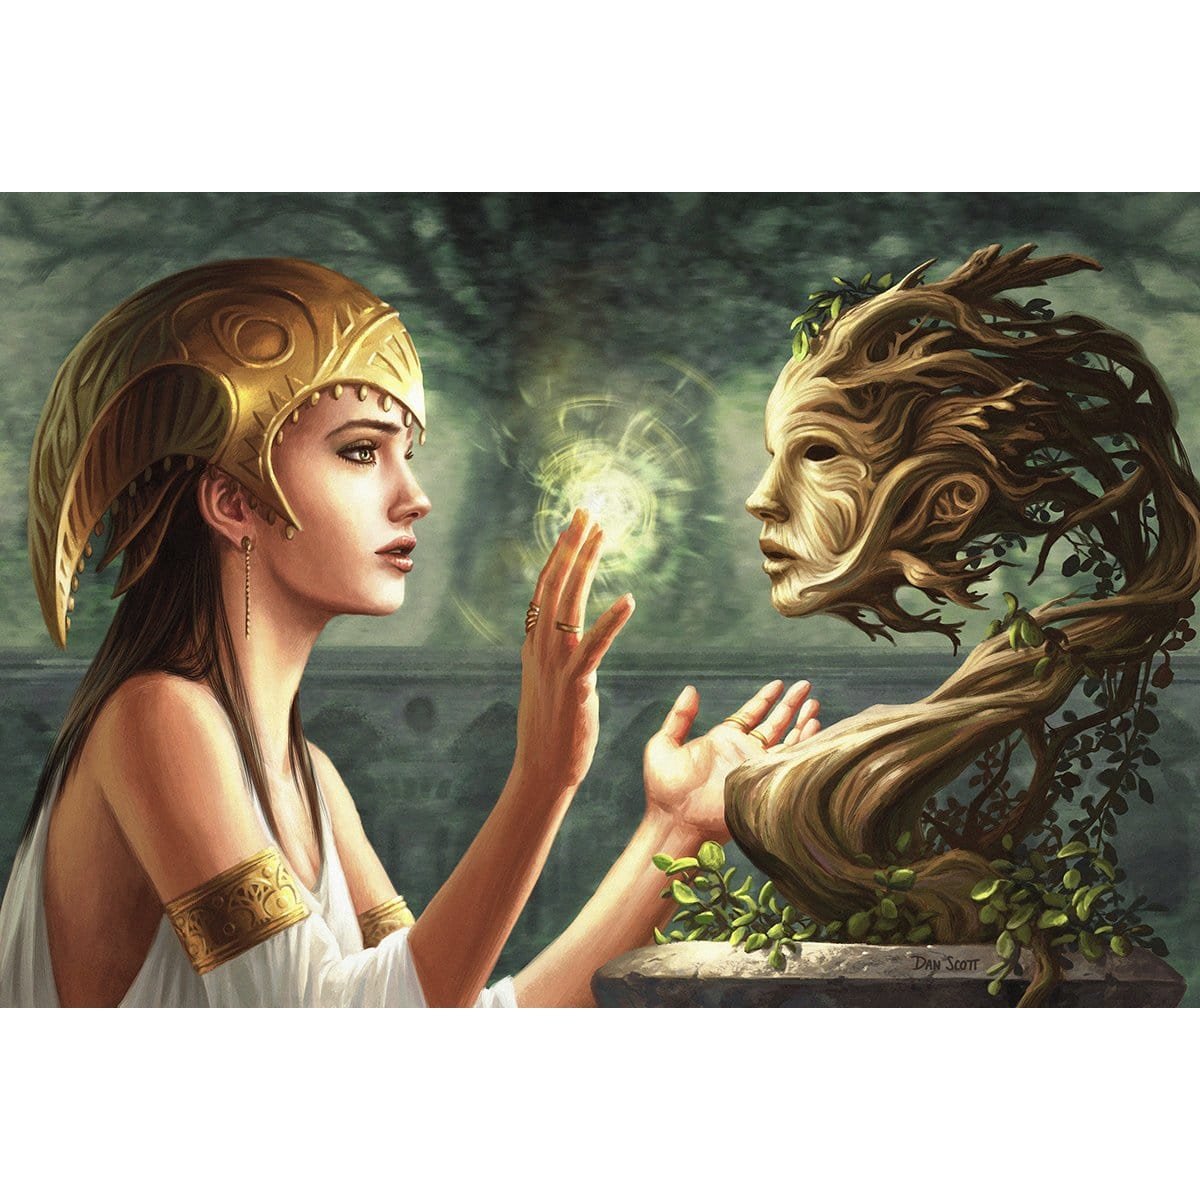 Druid's Deliverance Print - Print - Original Magic Art - Accessories for Magic the Gathering and other card games